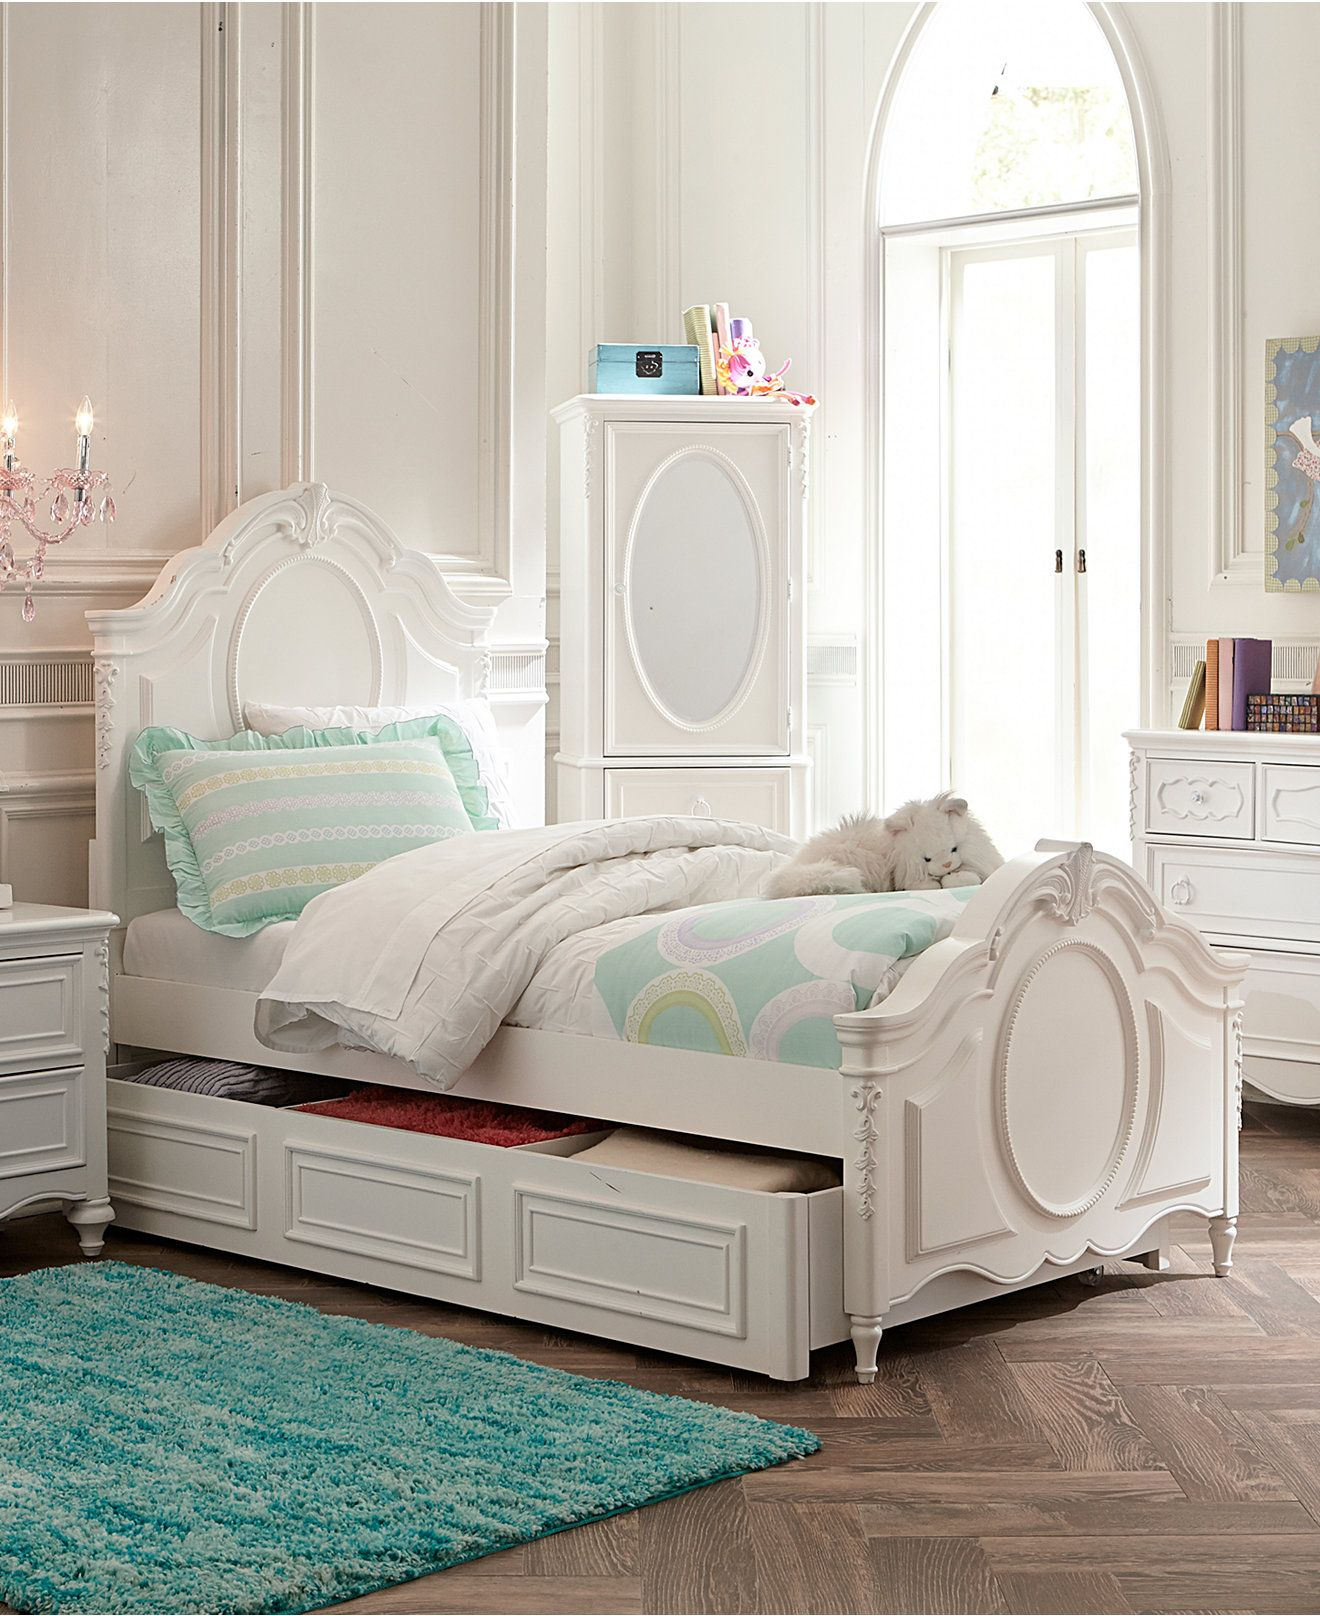 Celestial Kids Bed, Panel Bed